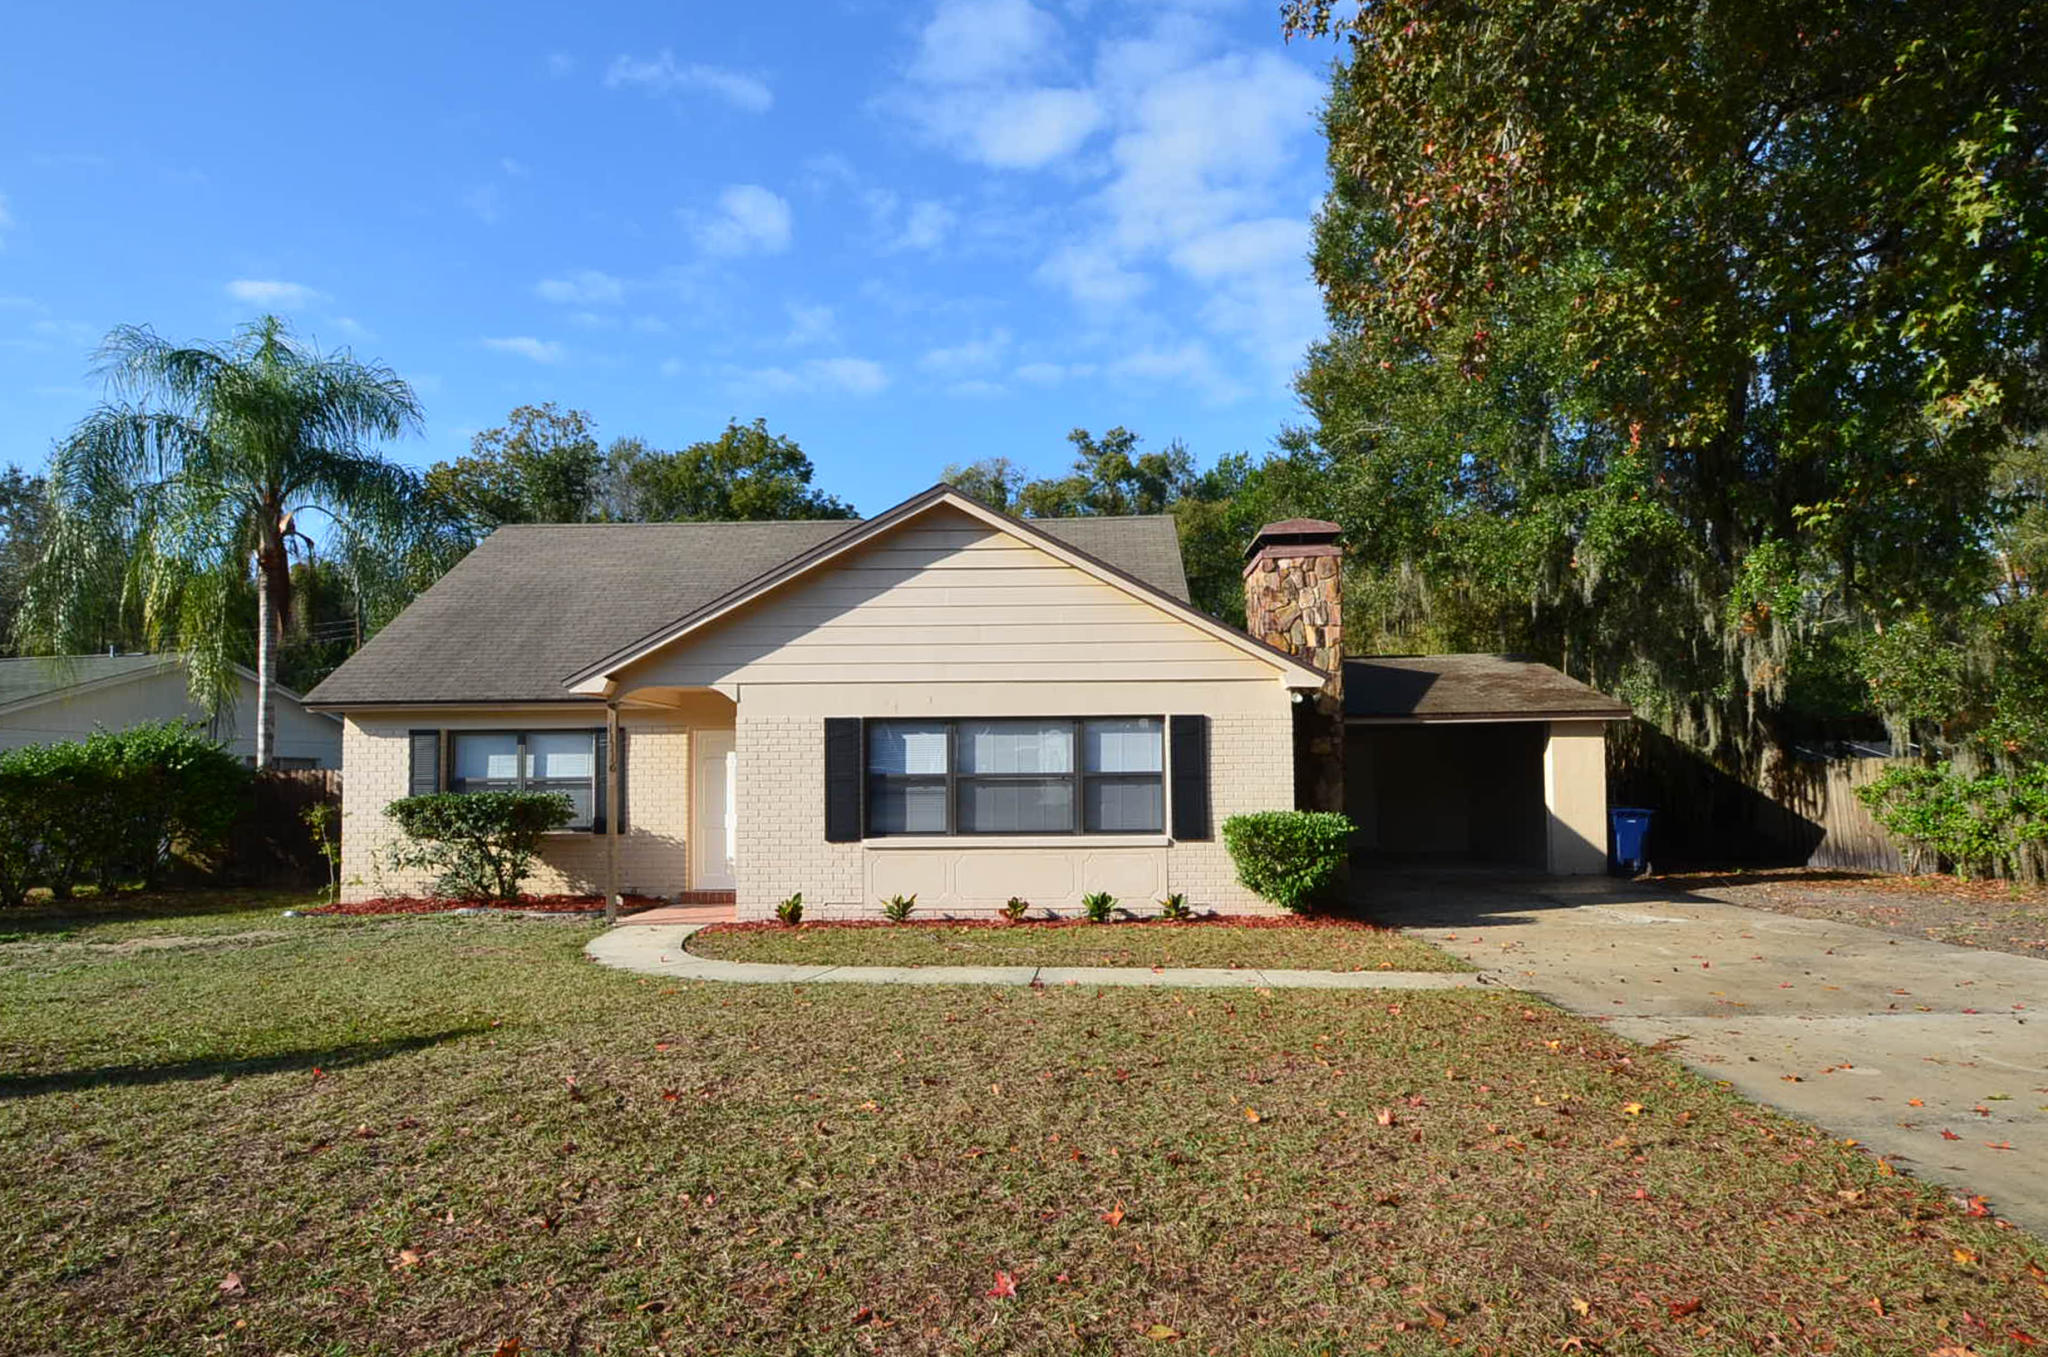 11116 n 19th st for rent tampa fl trulia